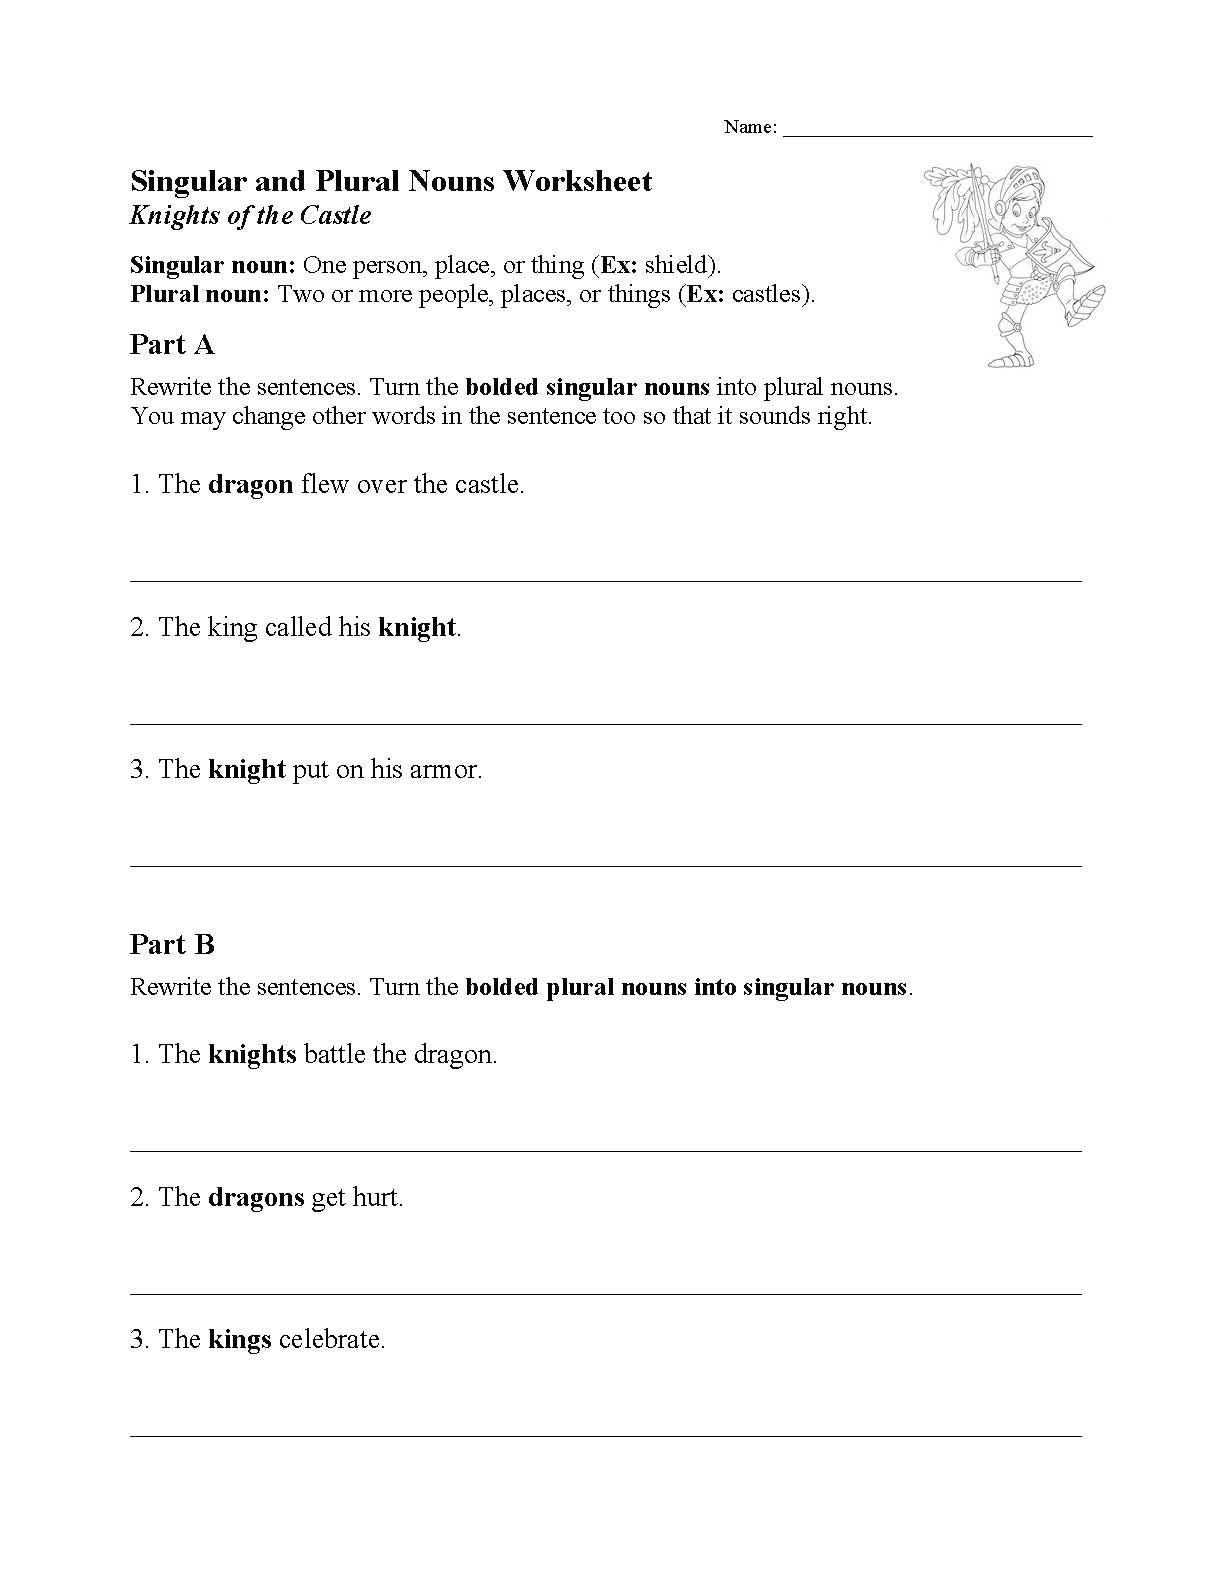 This is a preview image of one of our Language Arts Worksheets. Click on it to view all of our language arts worksheets.